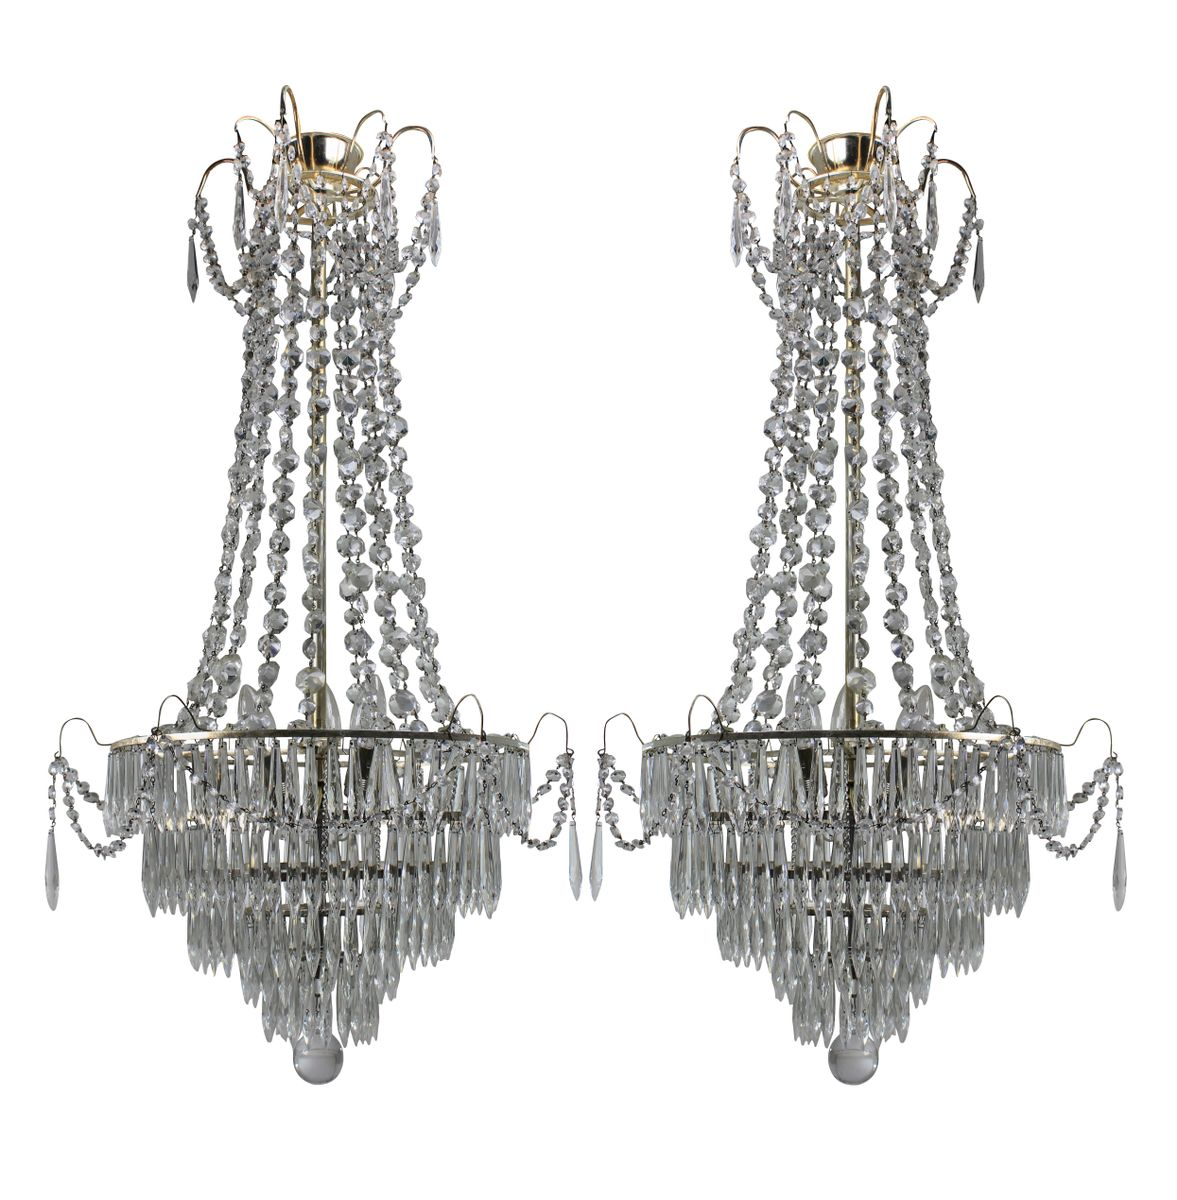 Swedish chandeliers 1930s set of 2 for sale at pamono swedish chandeliers 1930s set of 2 arubaitofo Image collections